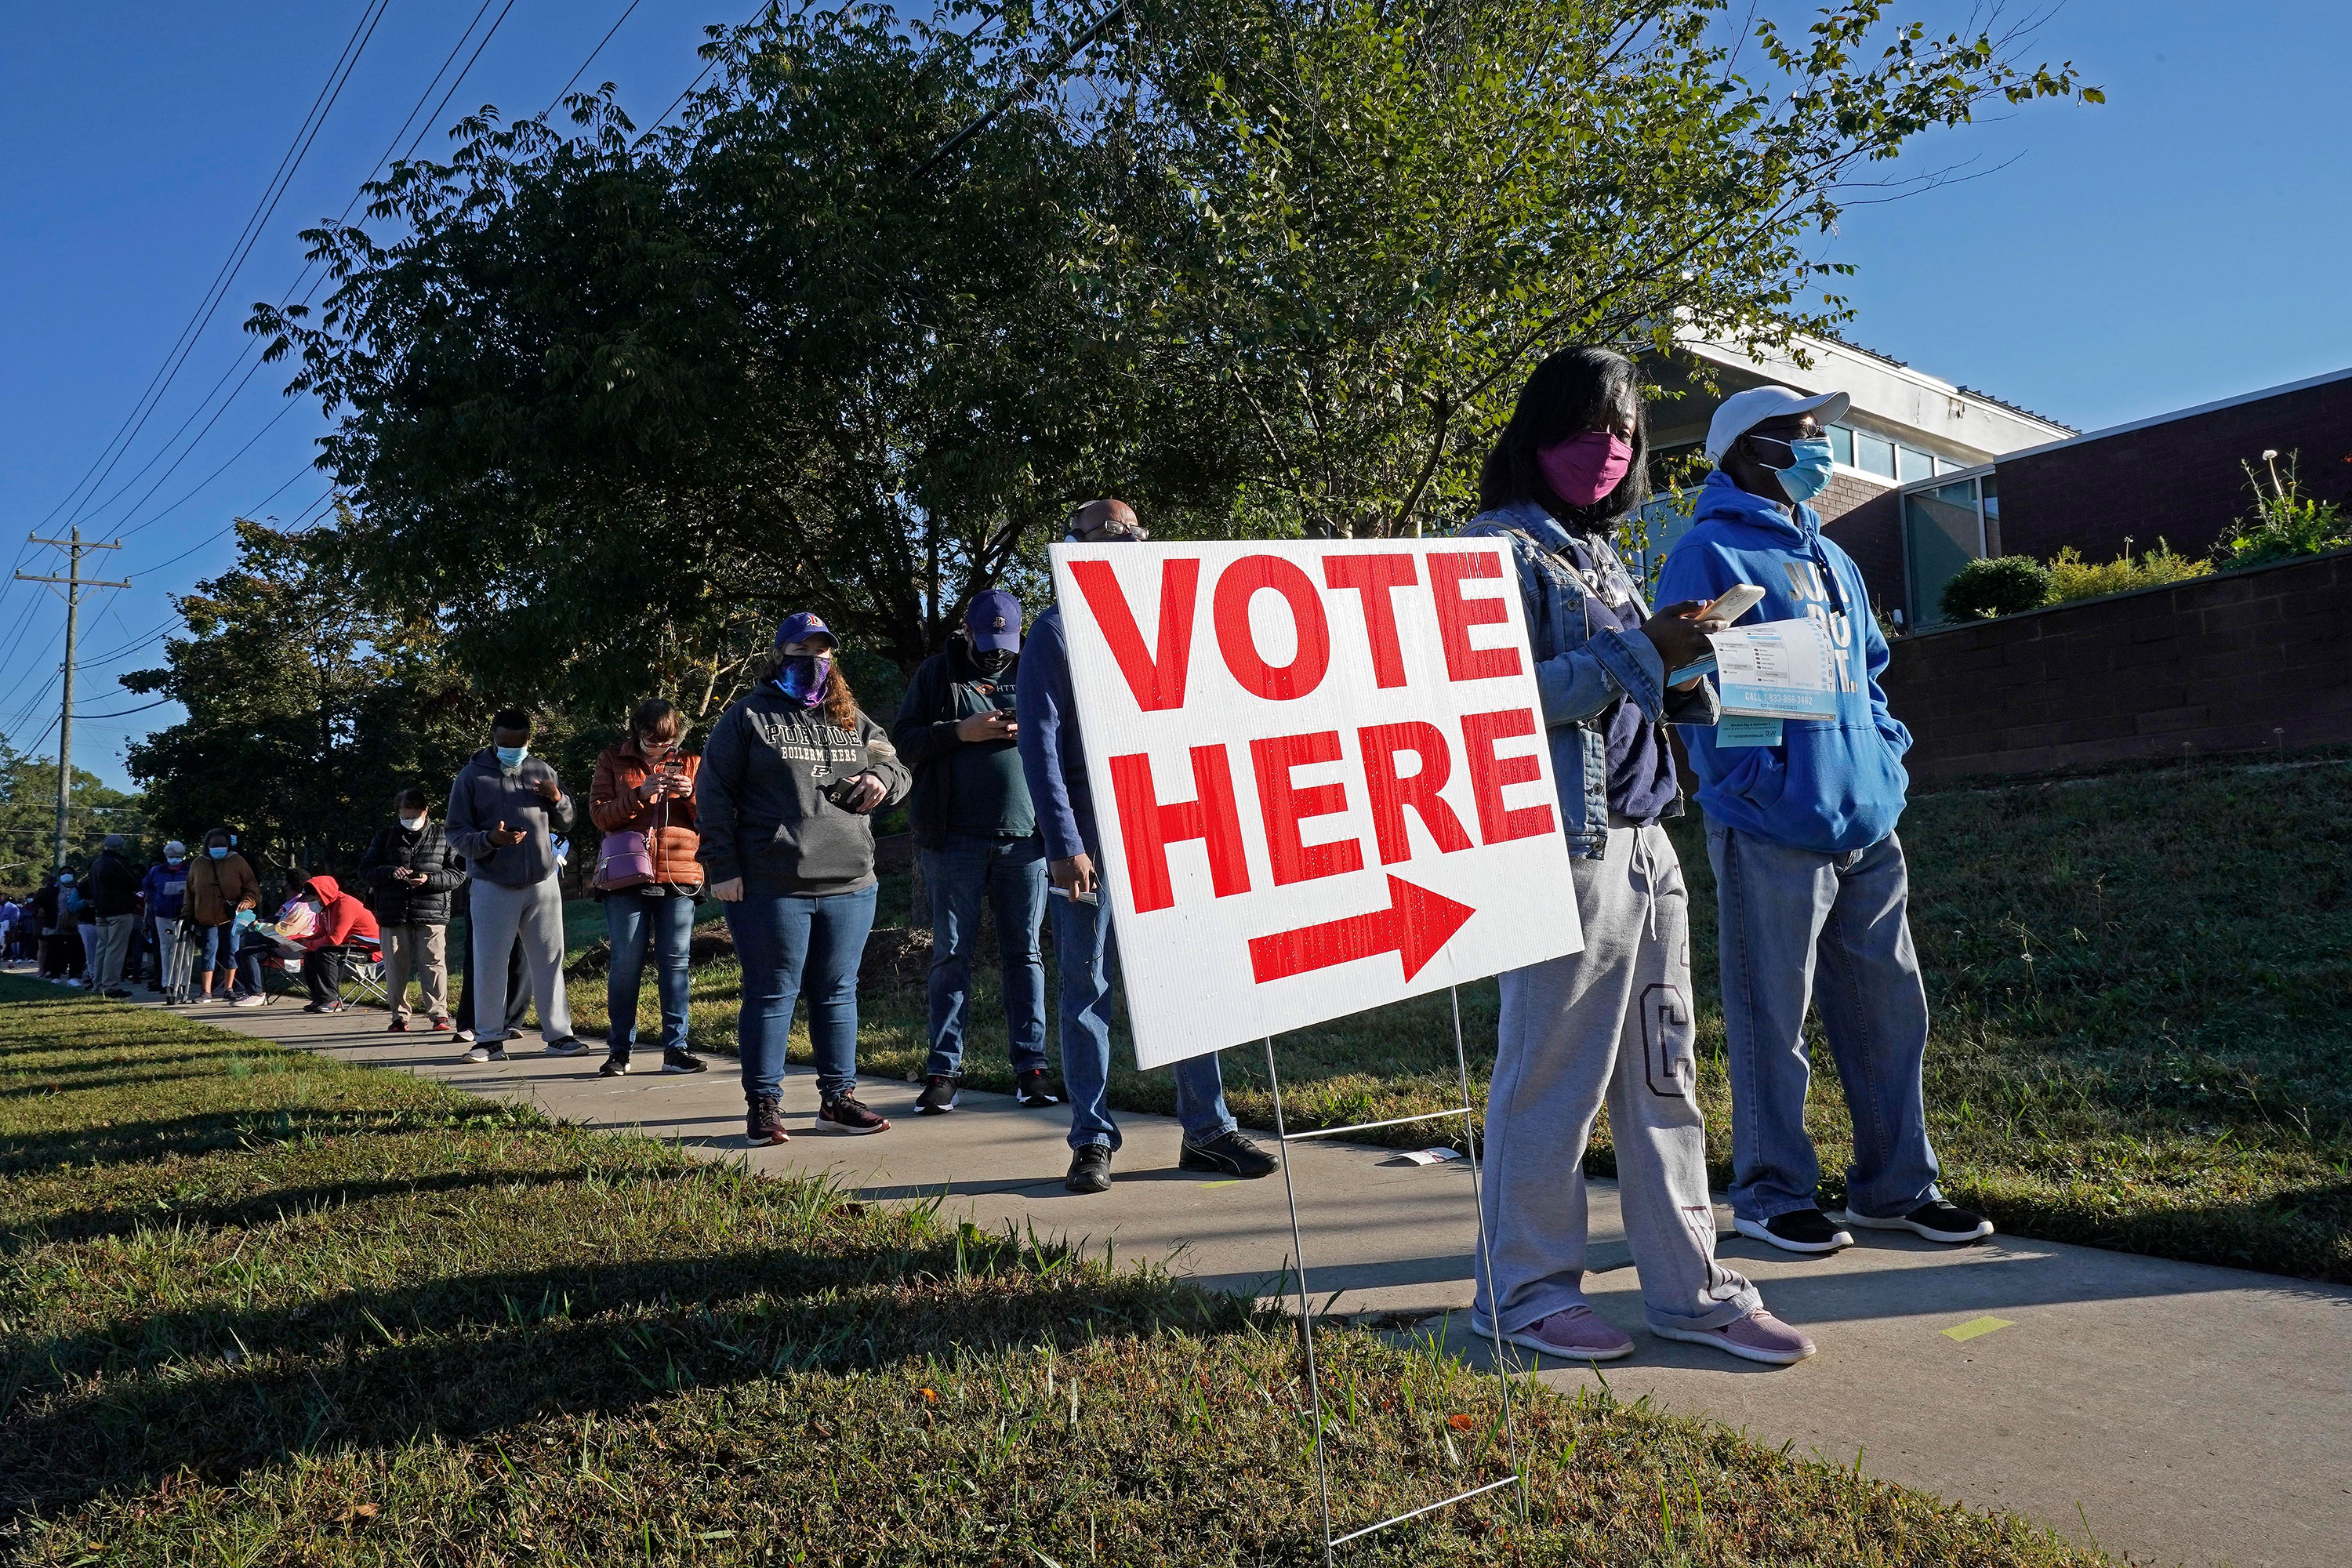 Early voters line up to cast their ballots at the South Regional Library polling location on October 15 in Durham, North Carolina.